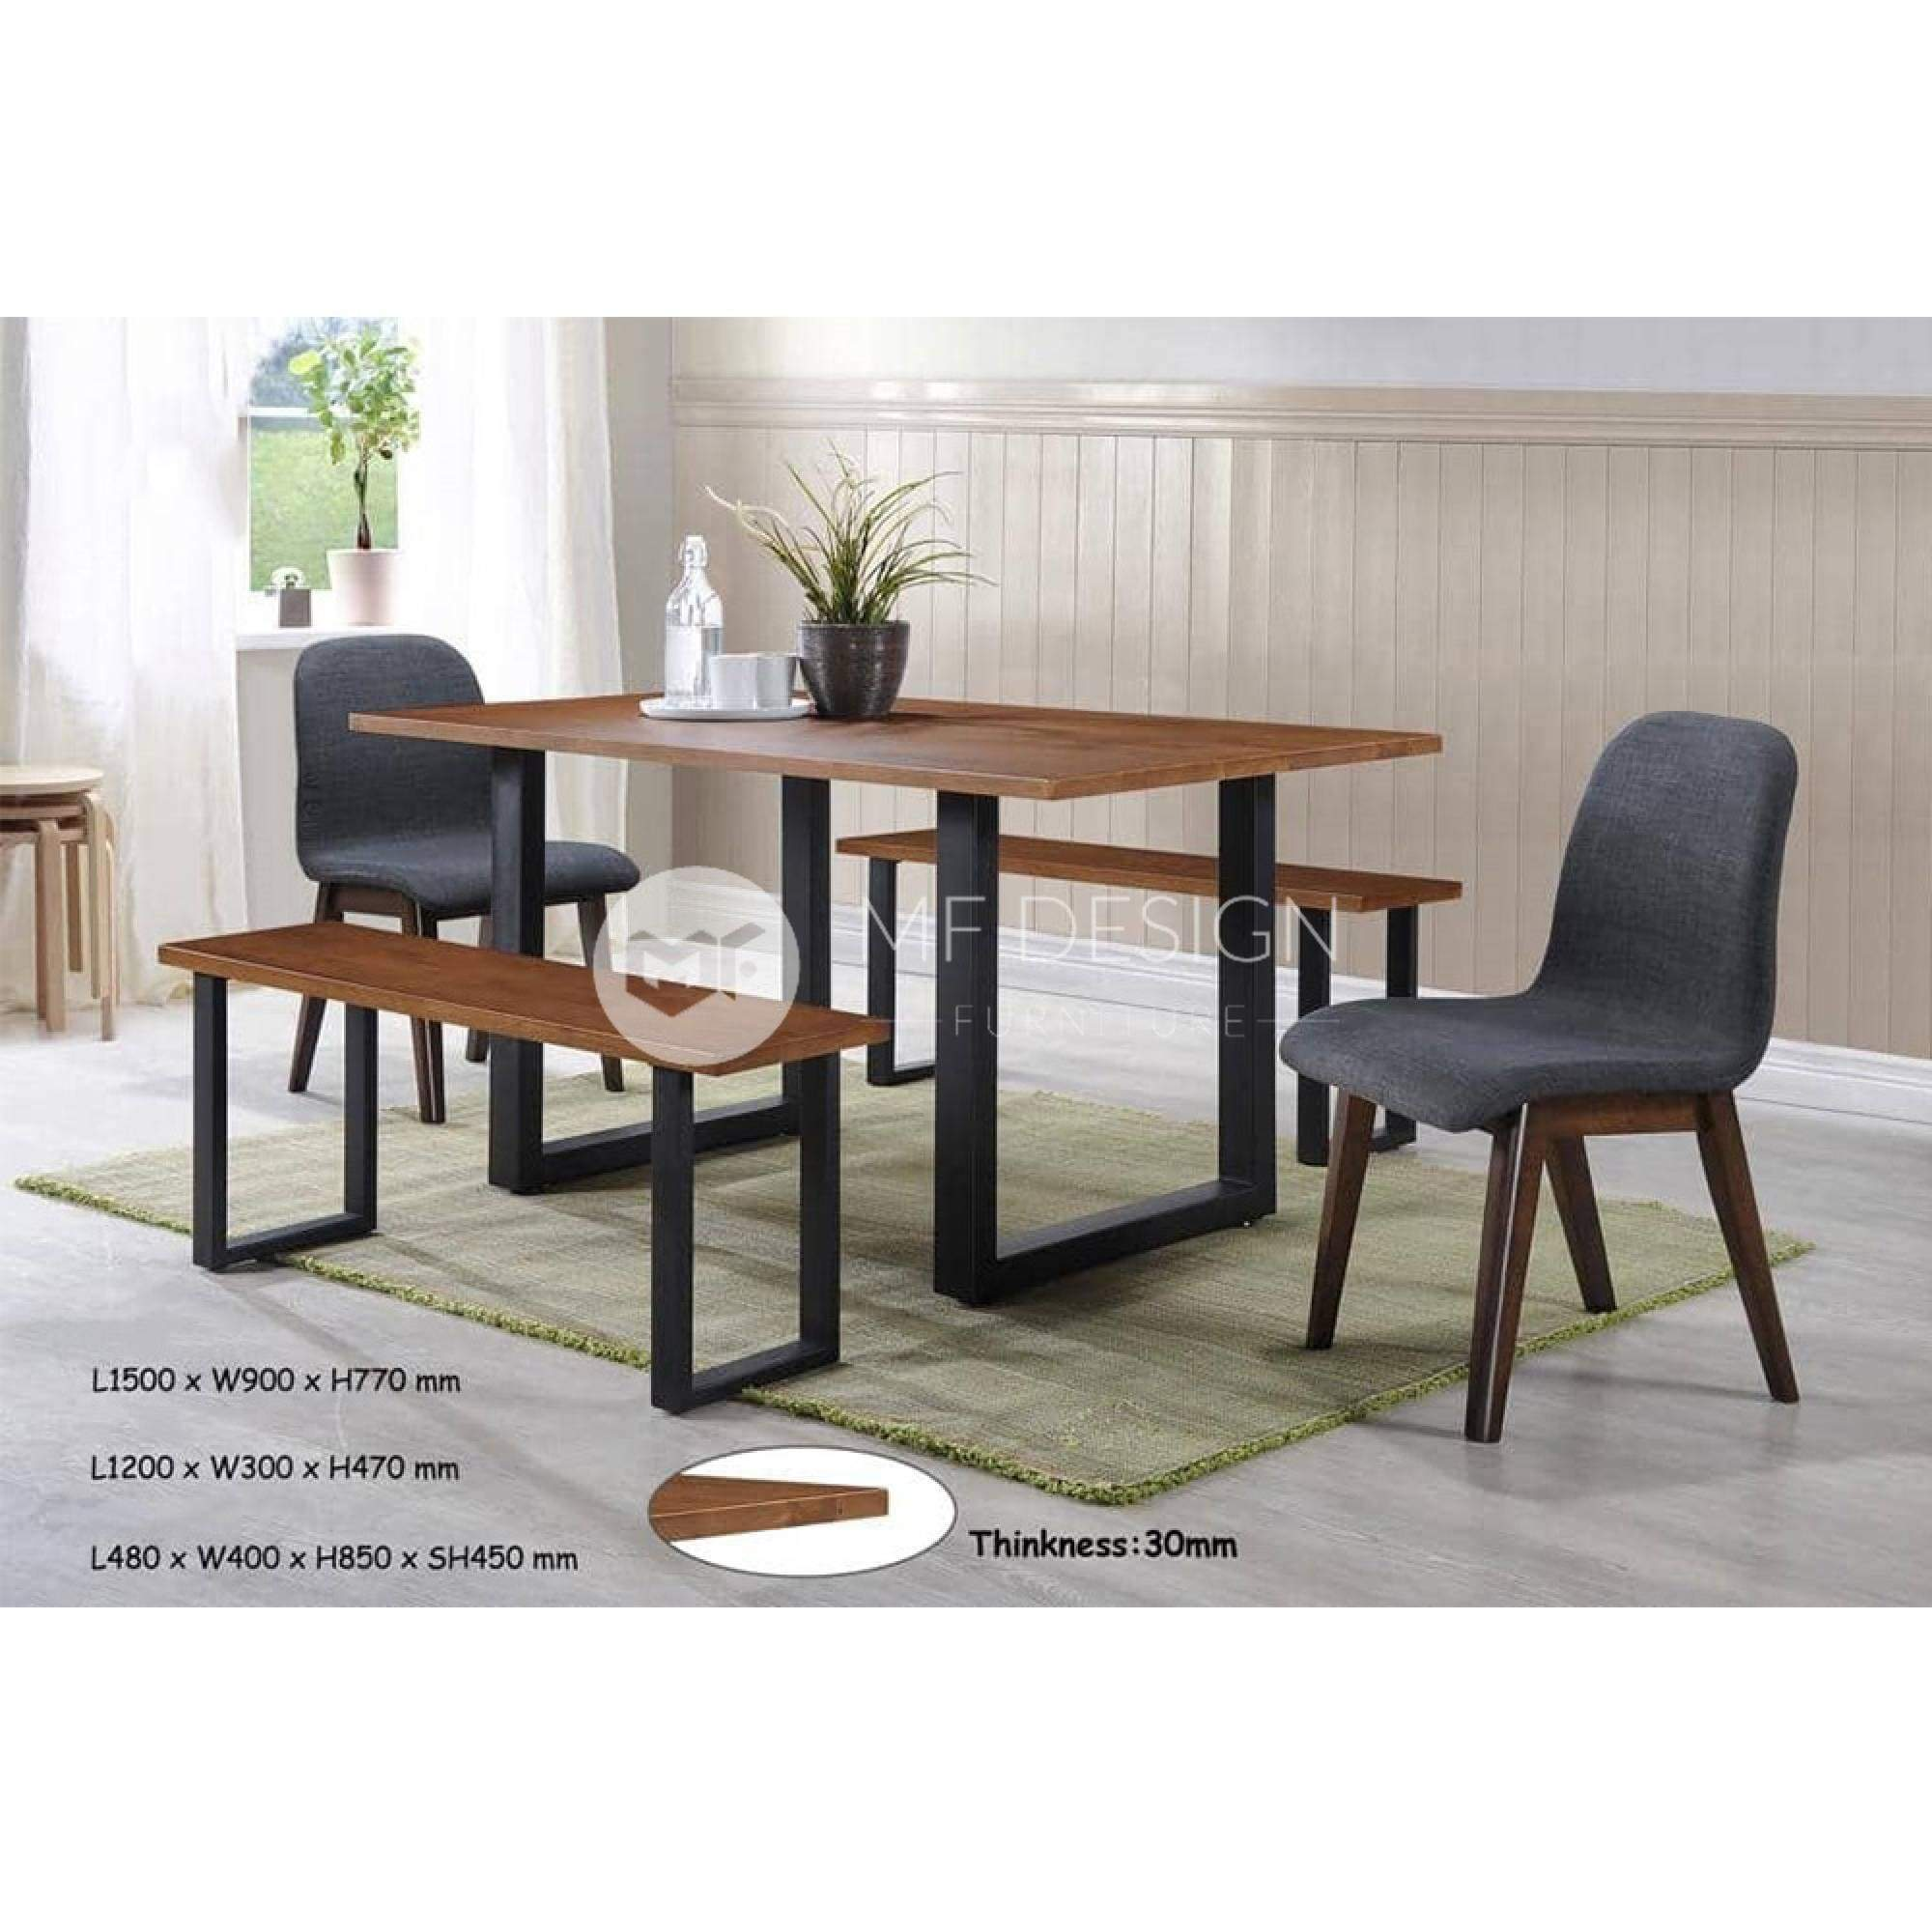 mfdesign88 Dining Sets Stetson Dining Set ( 1 Table + 2 Chairs + 2 Bench )